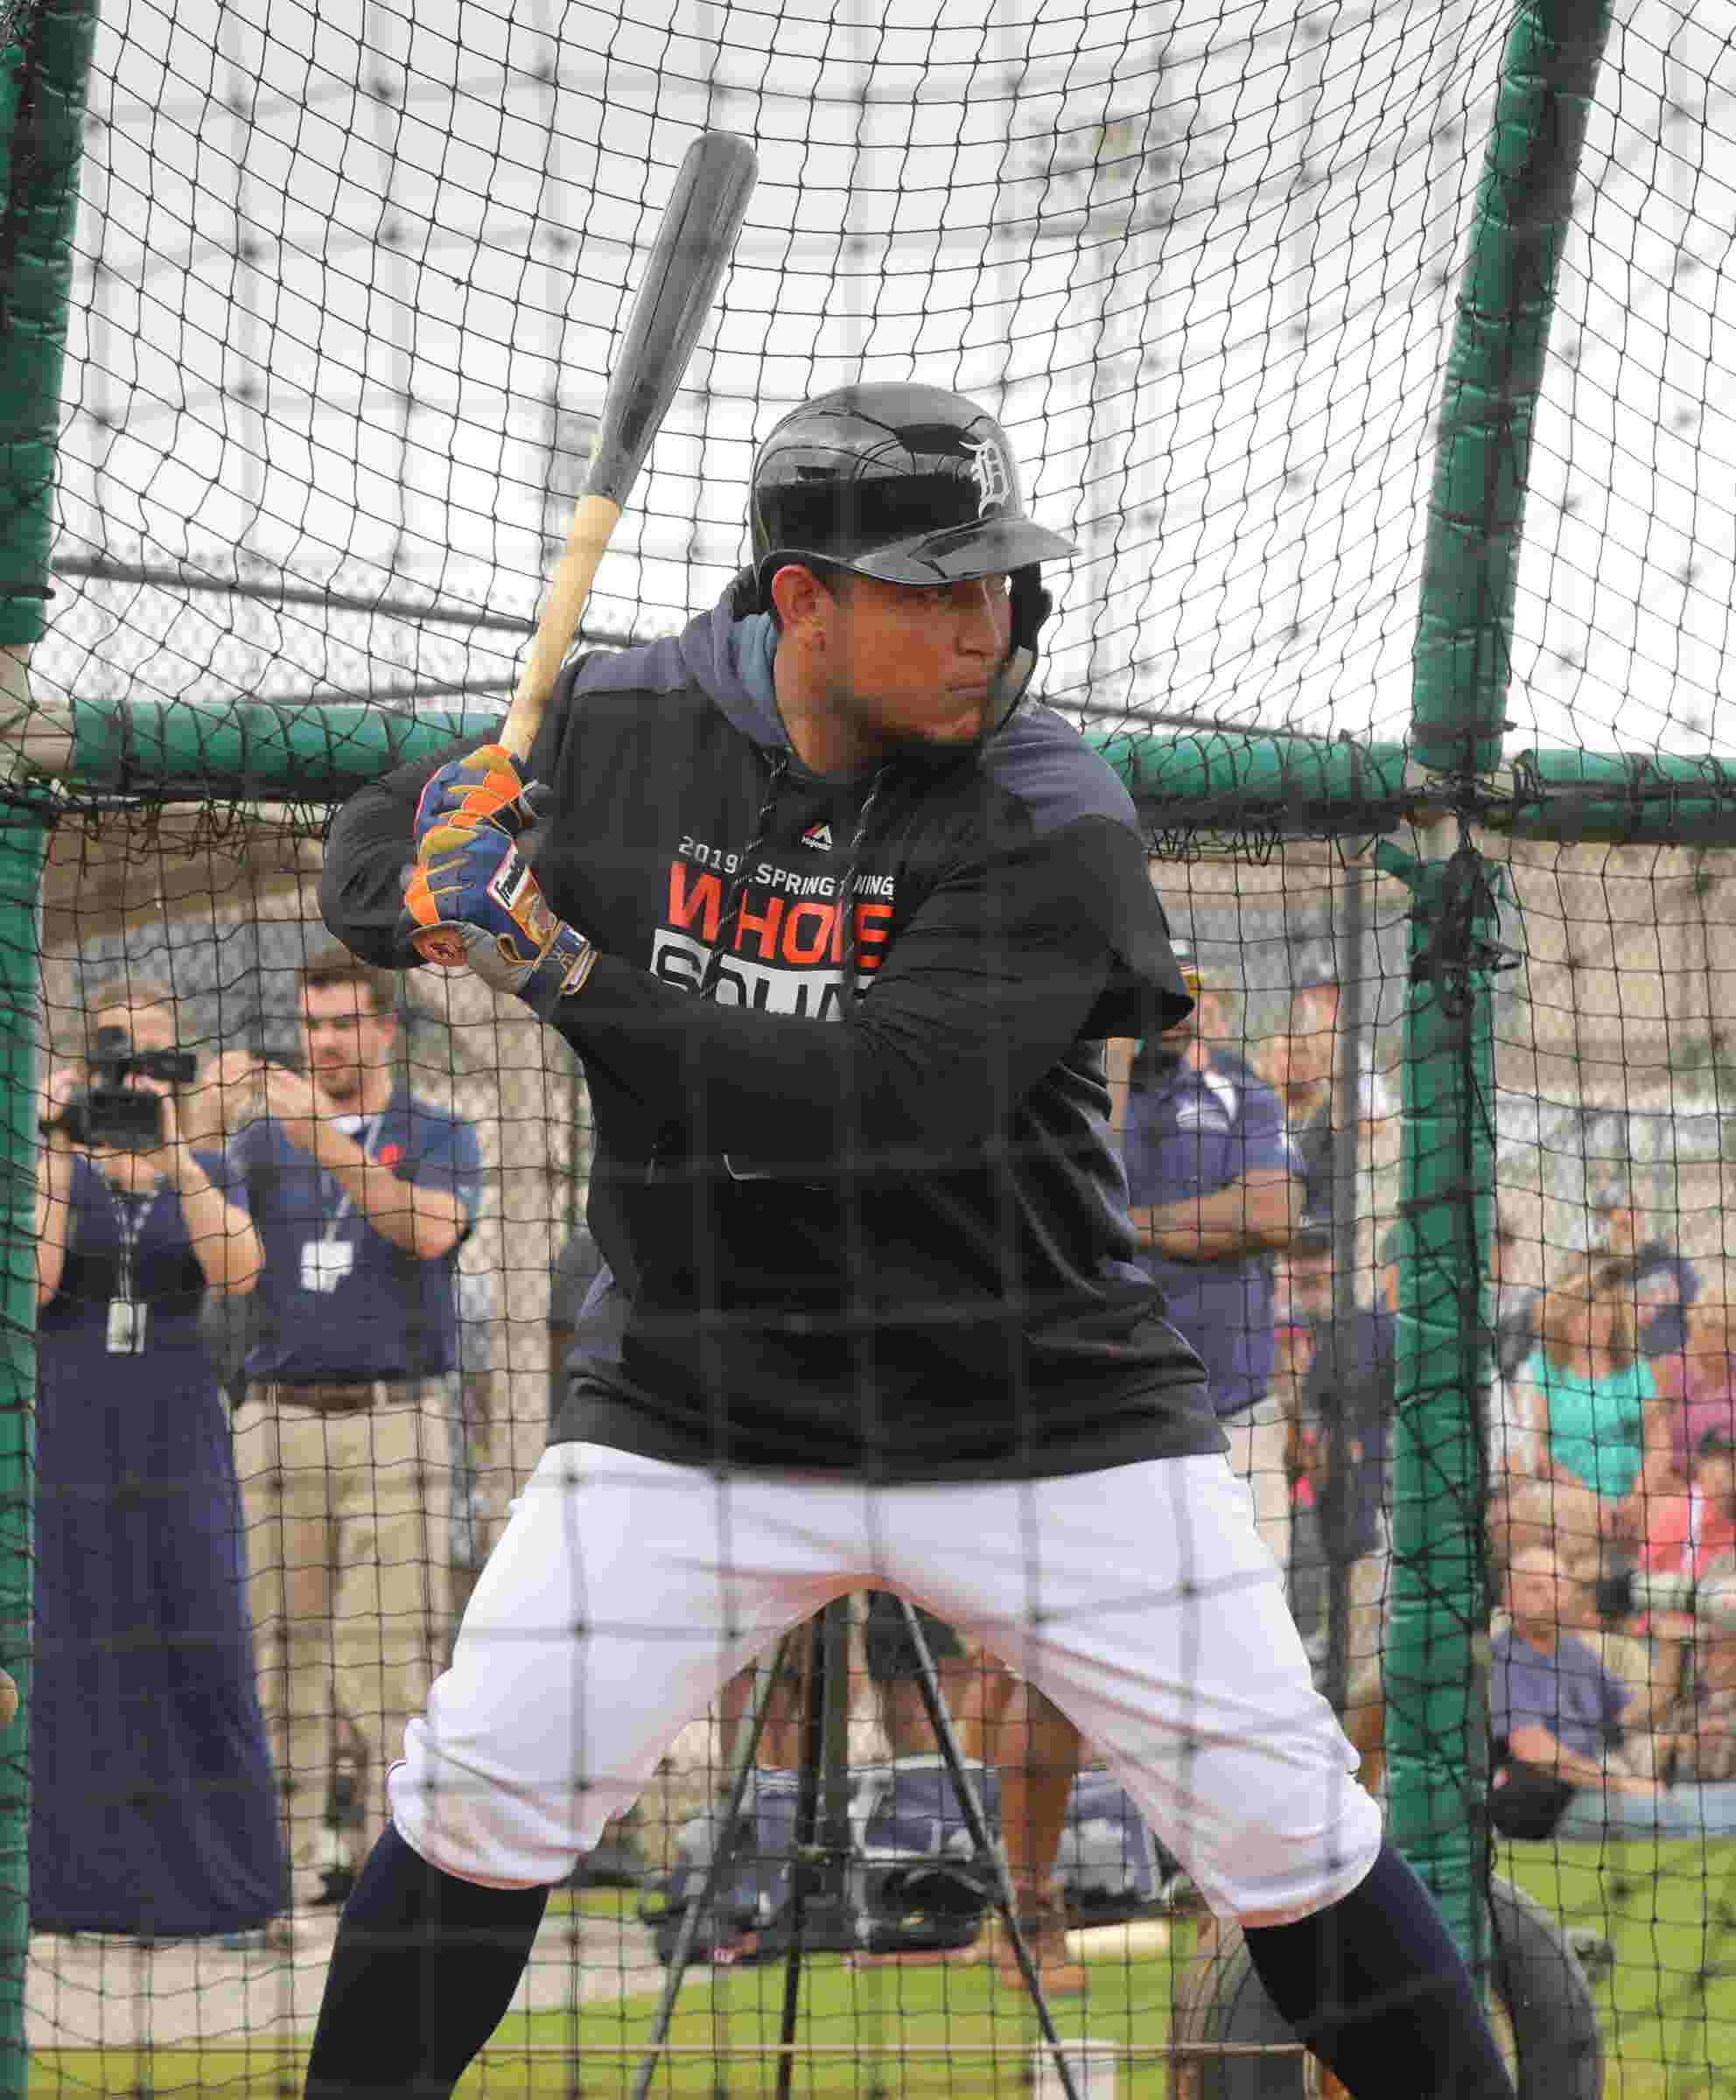 Detroit Tigers star Miguel Cabrera's swing in slow motion